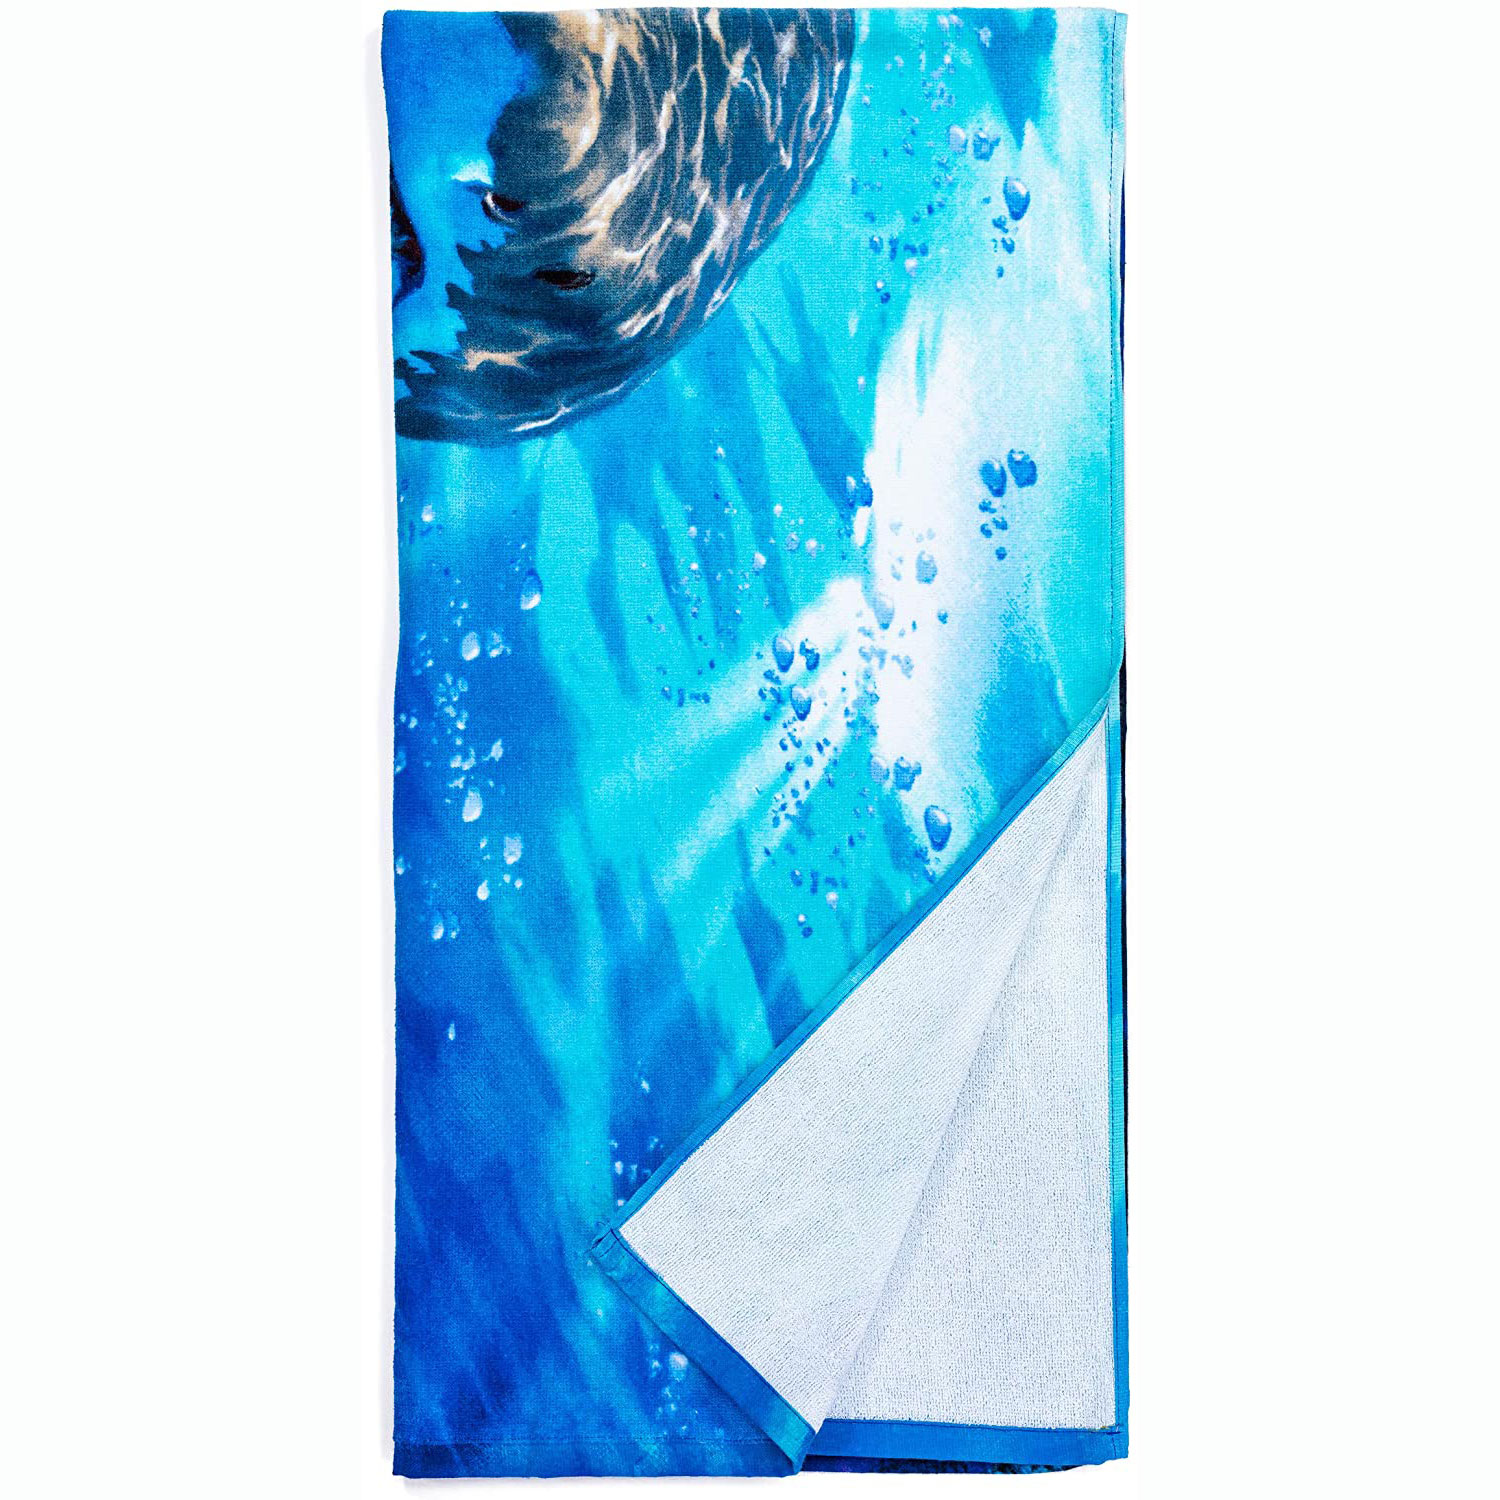 New 100% polyester digit printing custom beach towel promotional with your logo